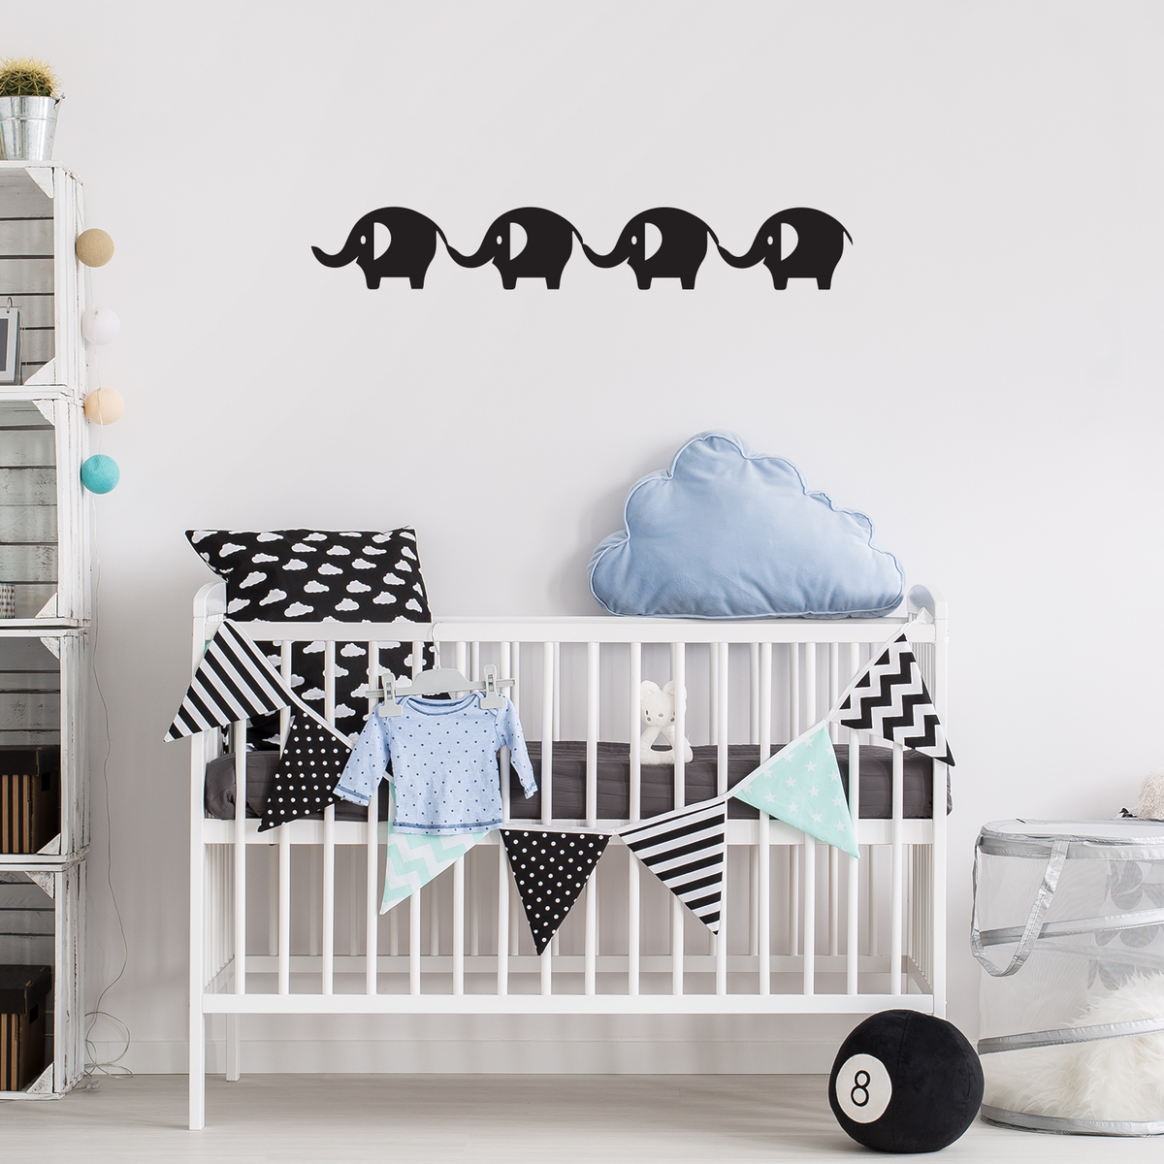 Printique Baby Elephants Vinyl Wall Art Stickers - 11